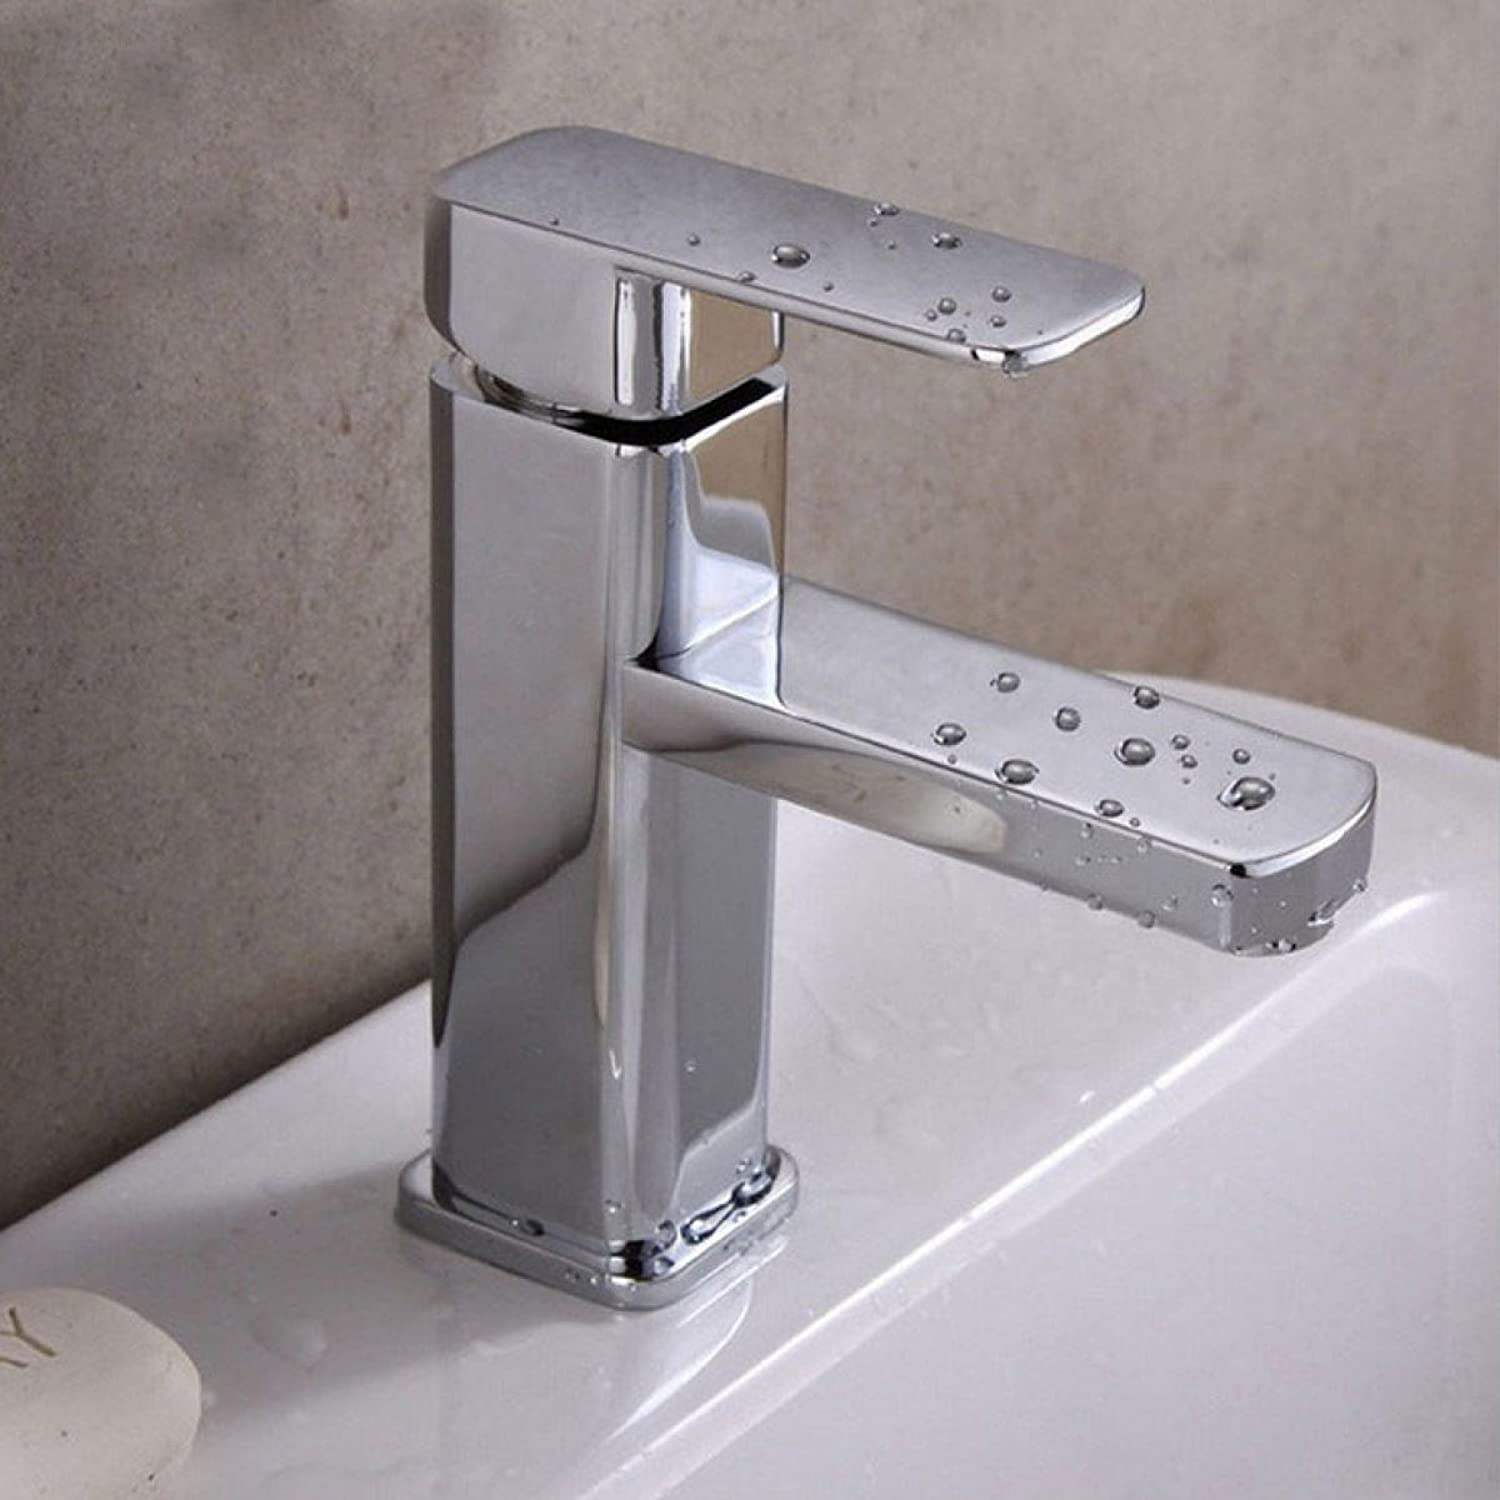 LDONGSH Bathroom Hot And Cold Wash Basin Copper Single Hole Toilet Electroplating Faucet Tap